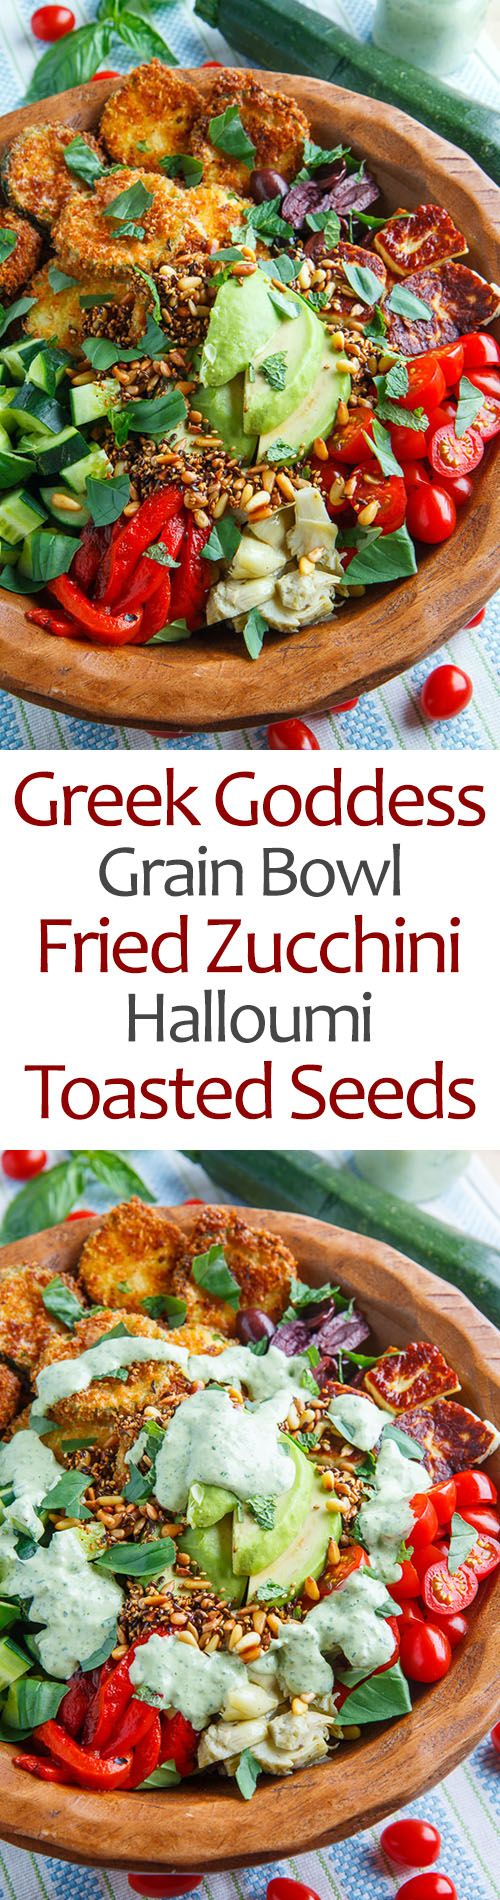 Greek Goddess Grain Bowl with Fried Zucchini, Halloumi and Toasted Seeds recipe. Protein:  seeds, nuts, cheese